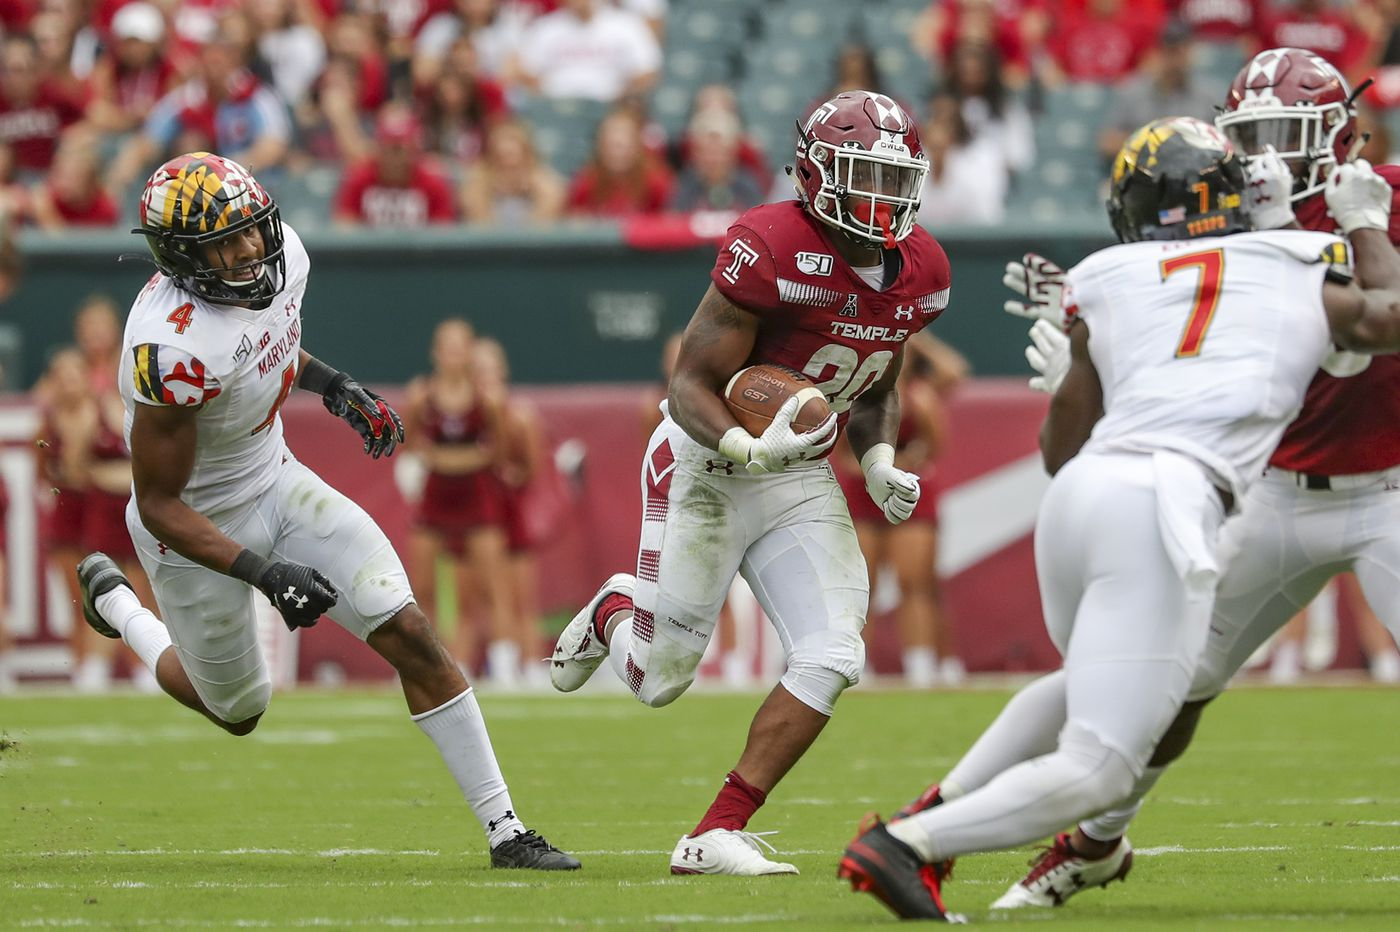 Temple's Re'Mahn Davis talks Heisman Trophy and improvement over last season's performance